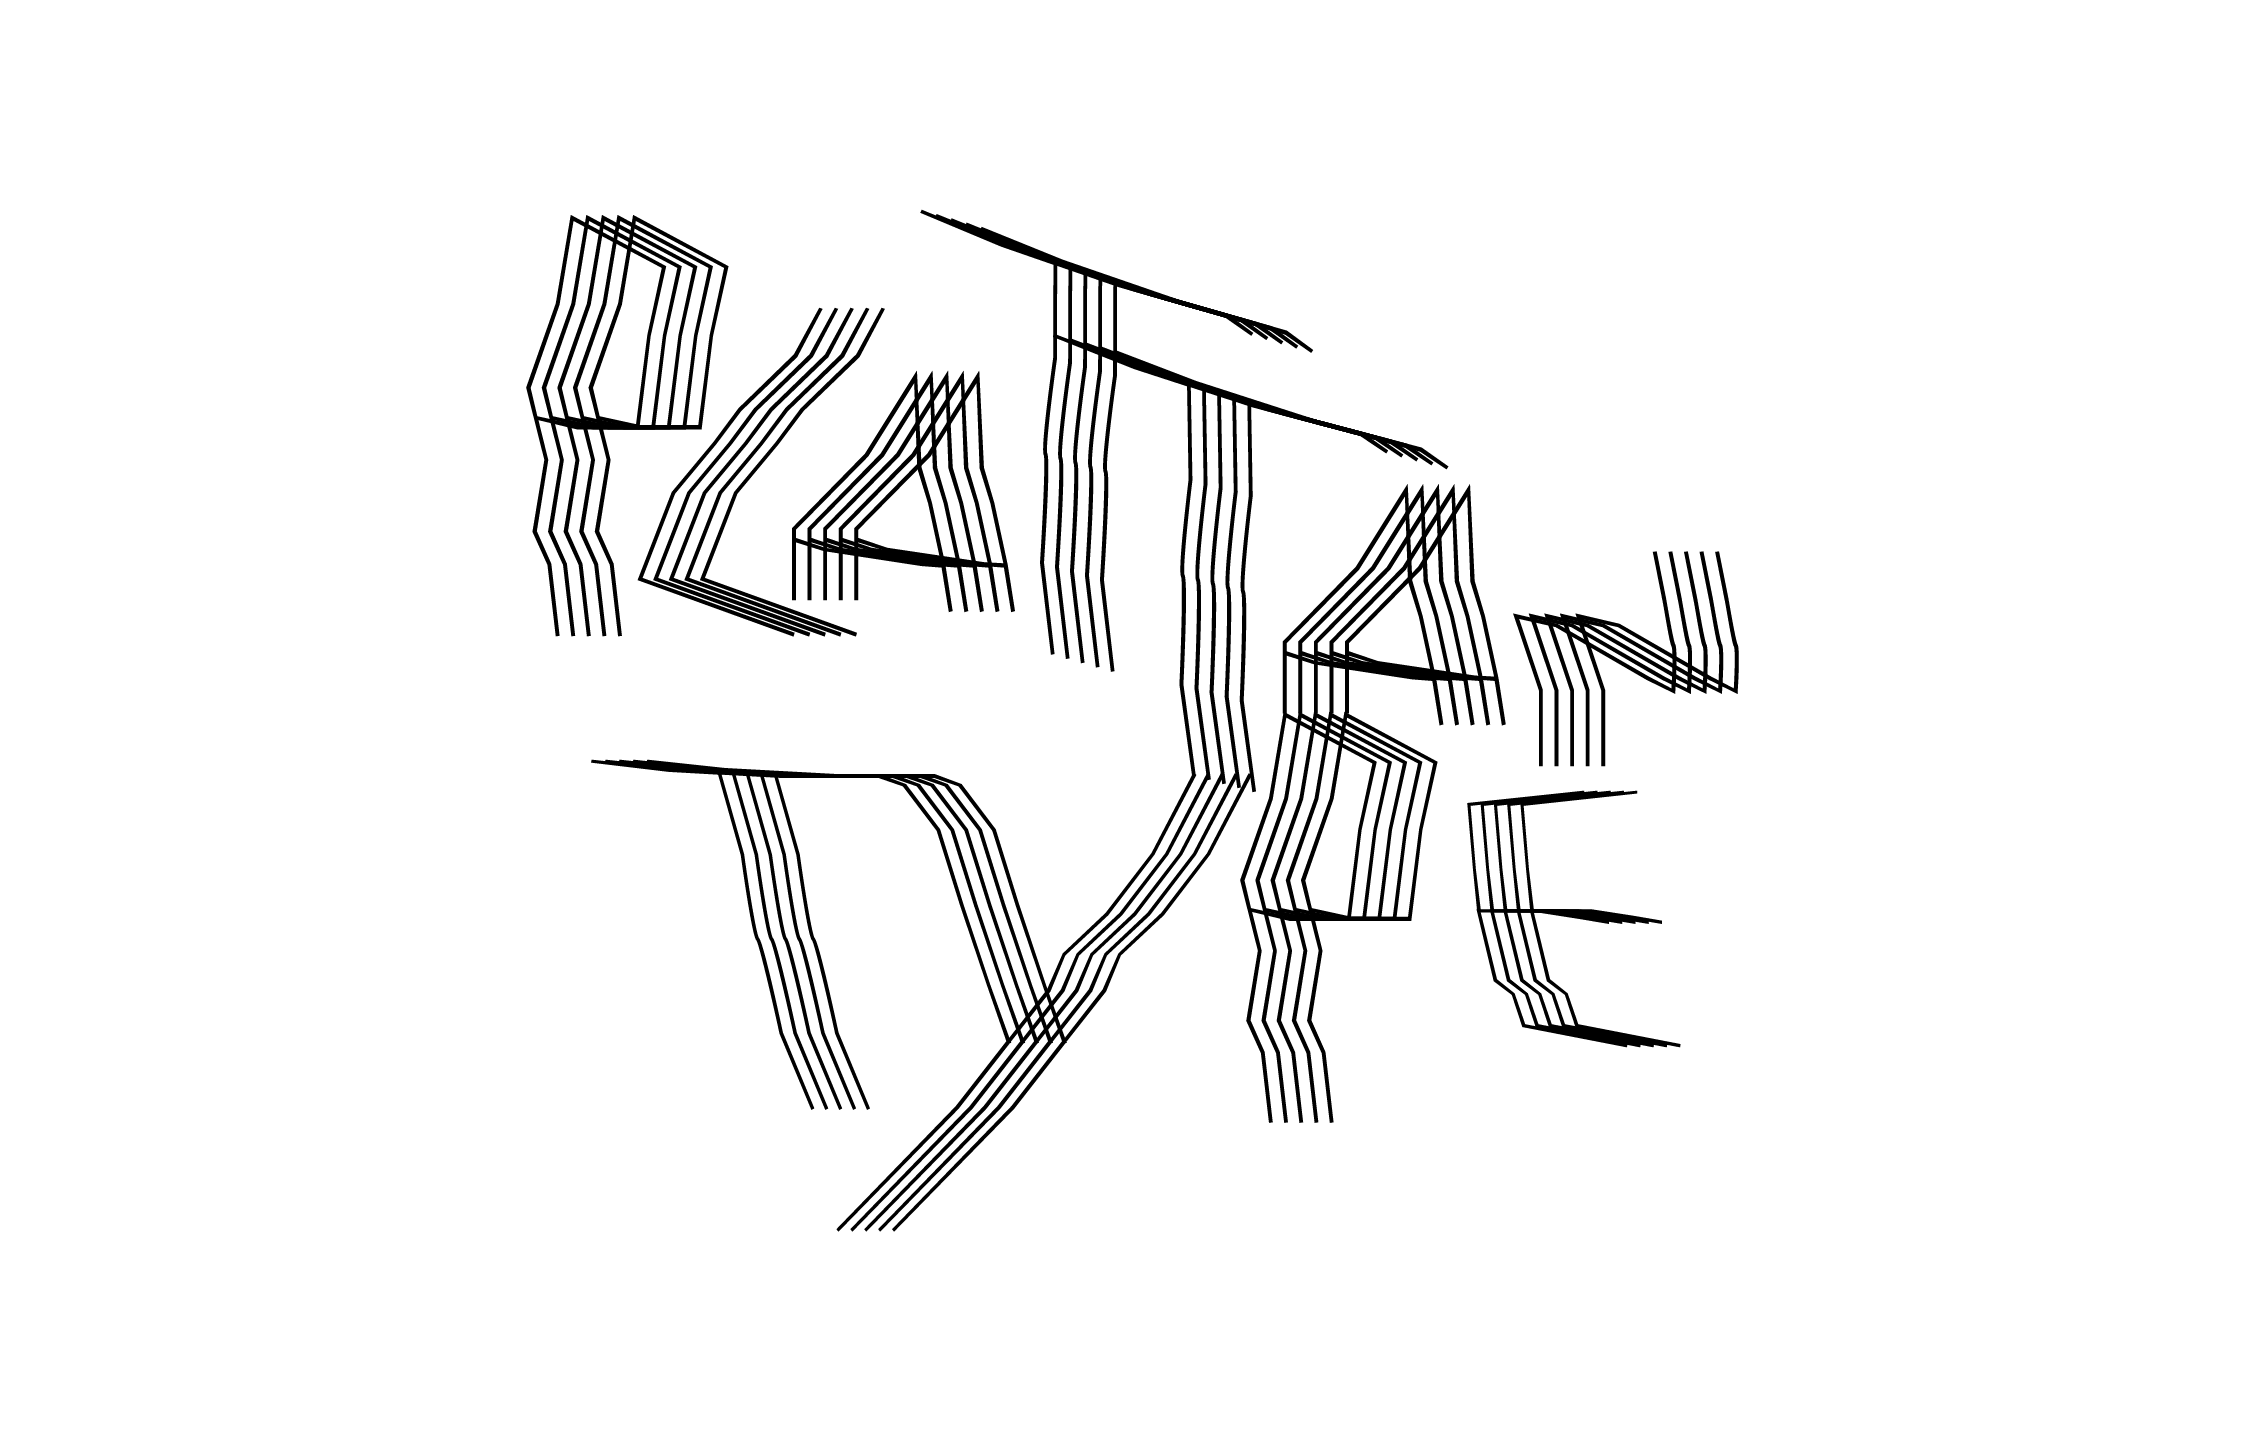 lines-03.png